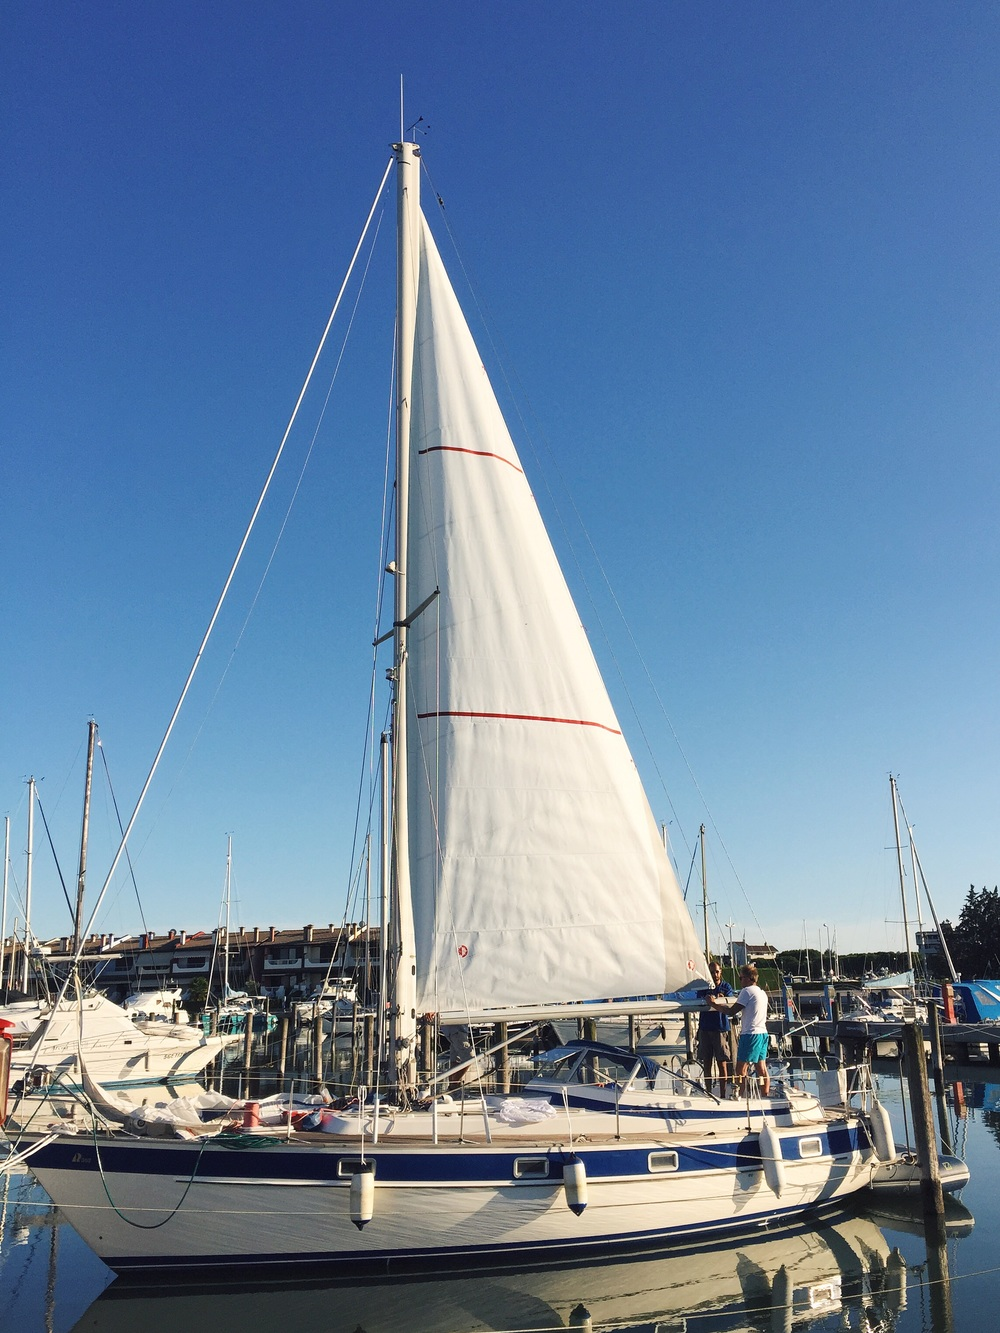 New main sail on our Hallberg Rassy 352